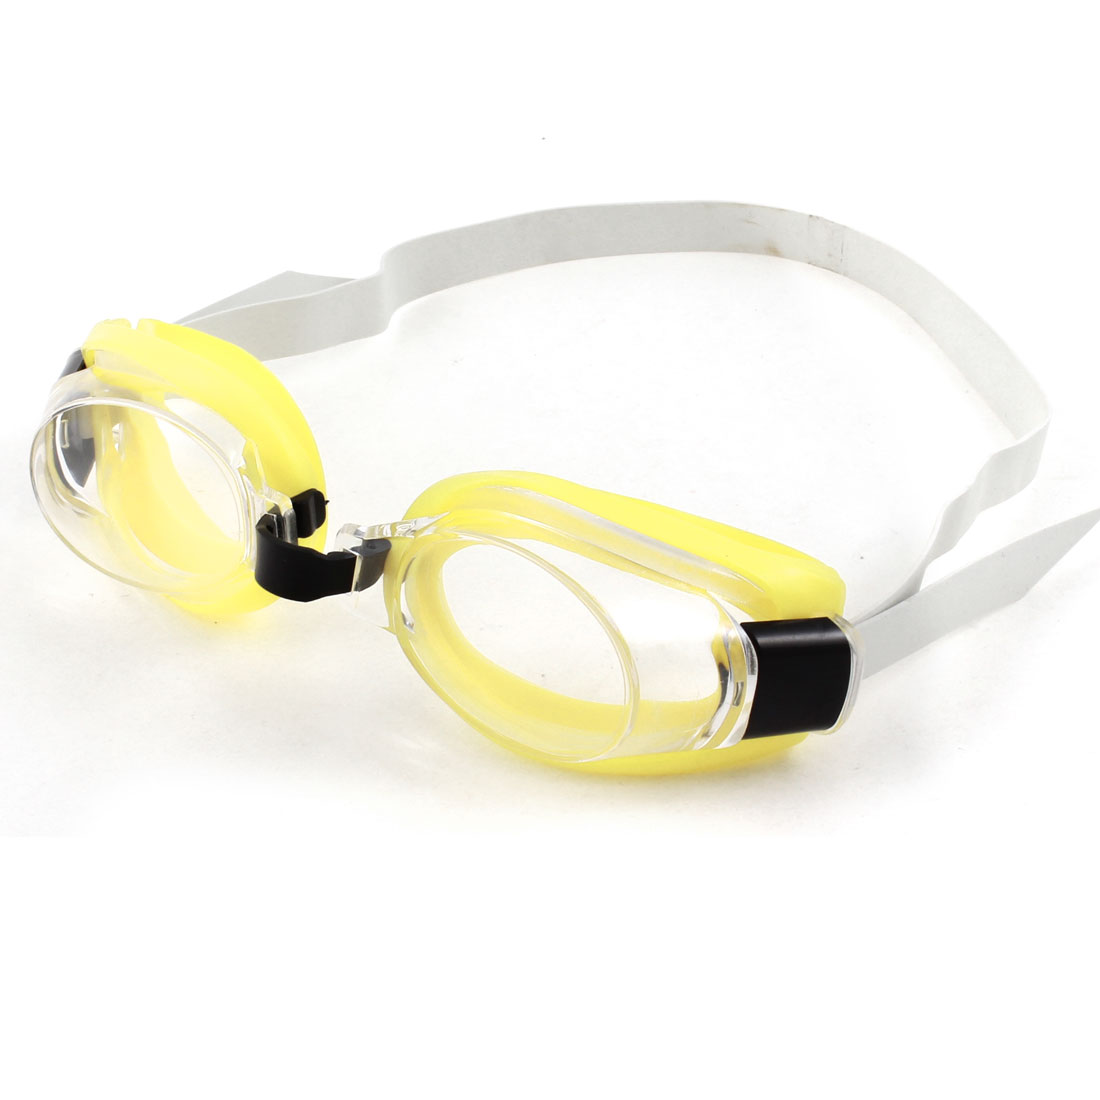 Adult White Stretchy Headstrap Yellow Flexible Silicone Swim Goggles